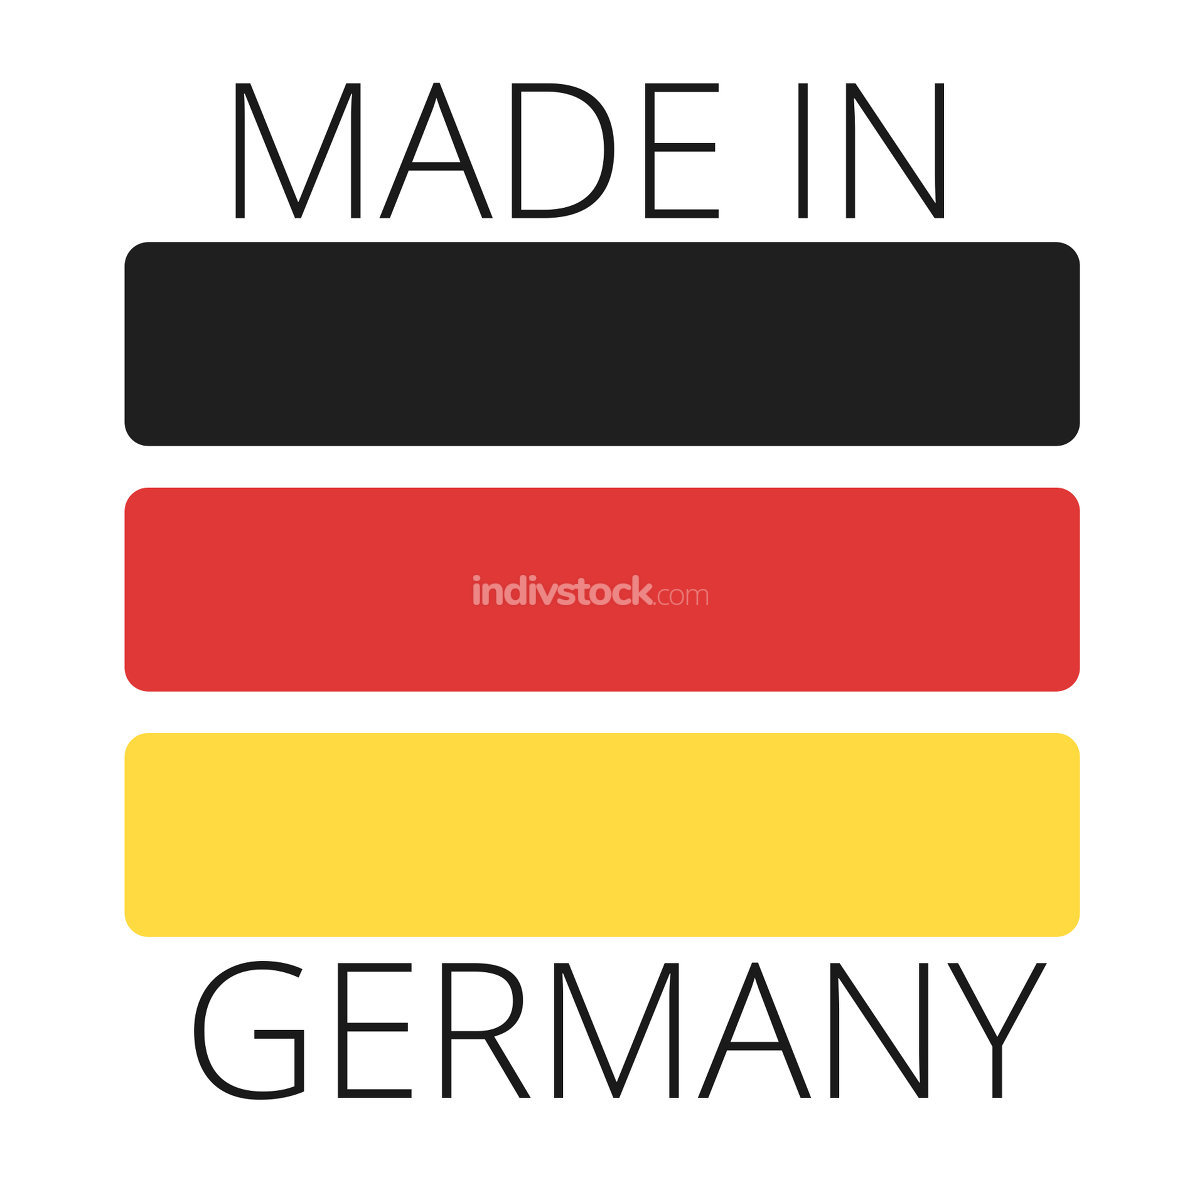 free download: Made in Germany symbol